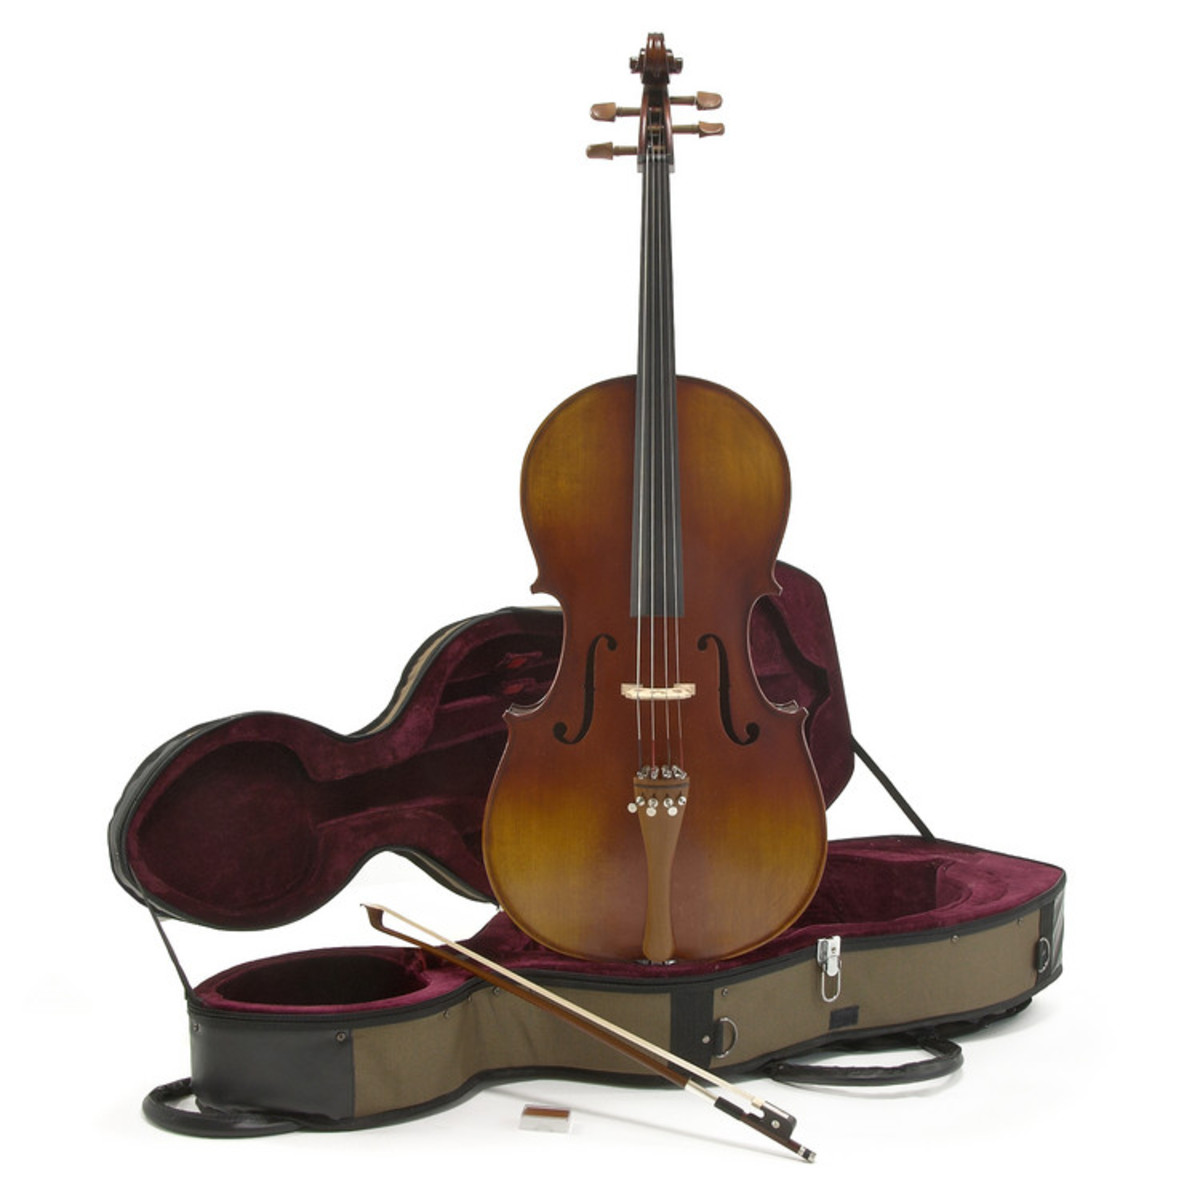 Image of Deluxe 1/2 Cello with Case Antique Fade by Gear4music